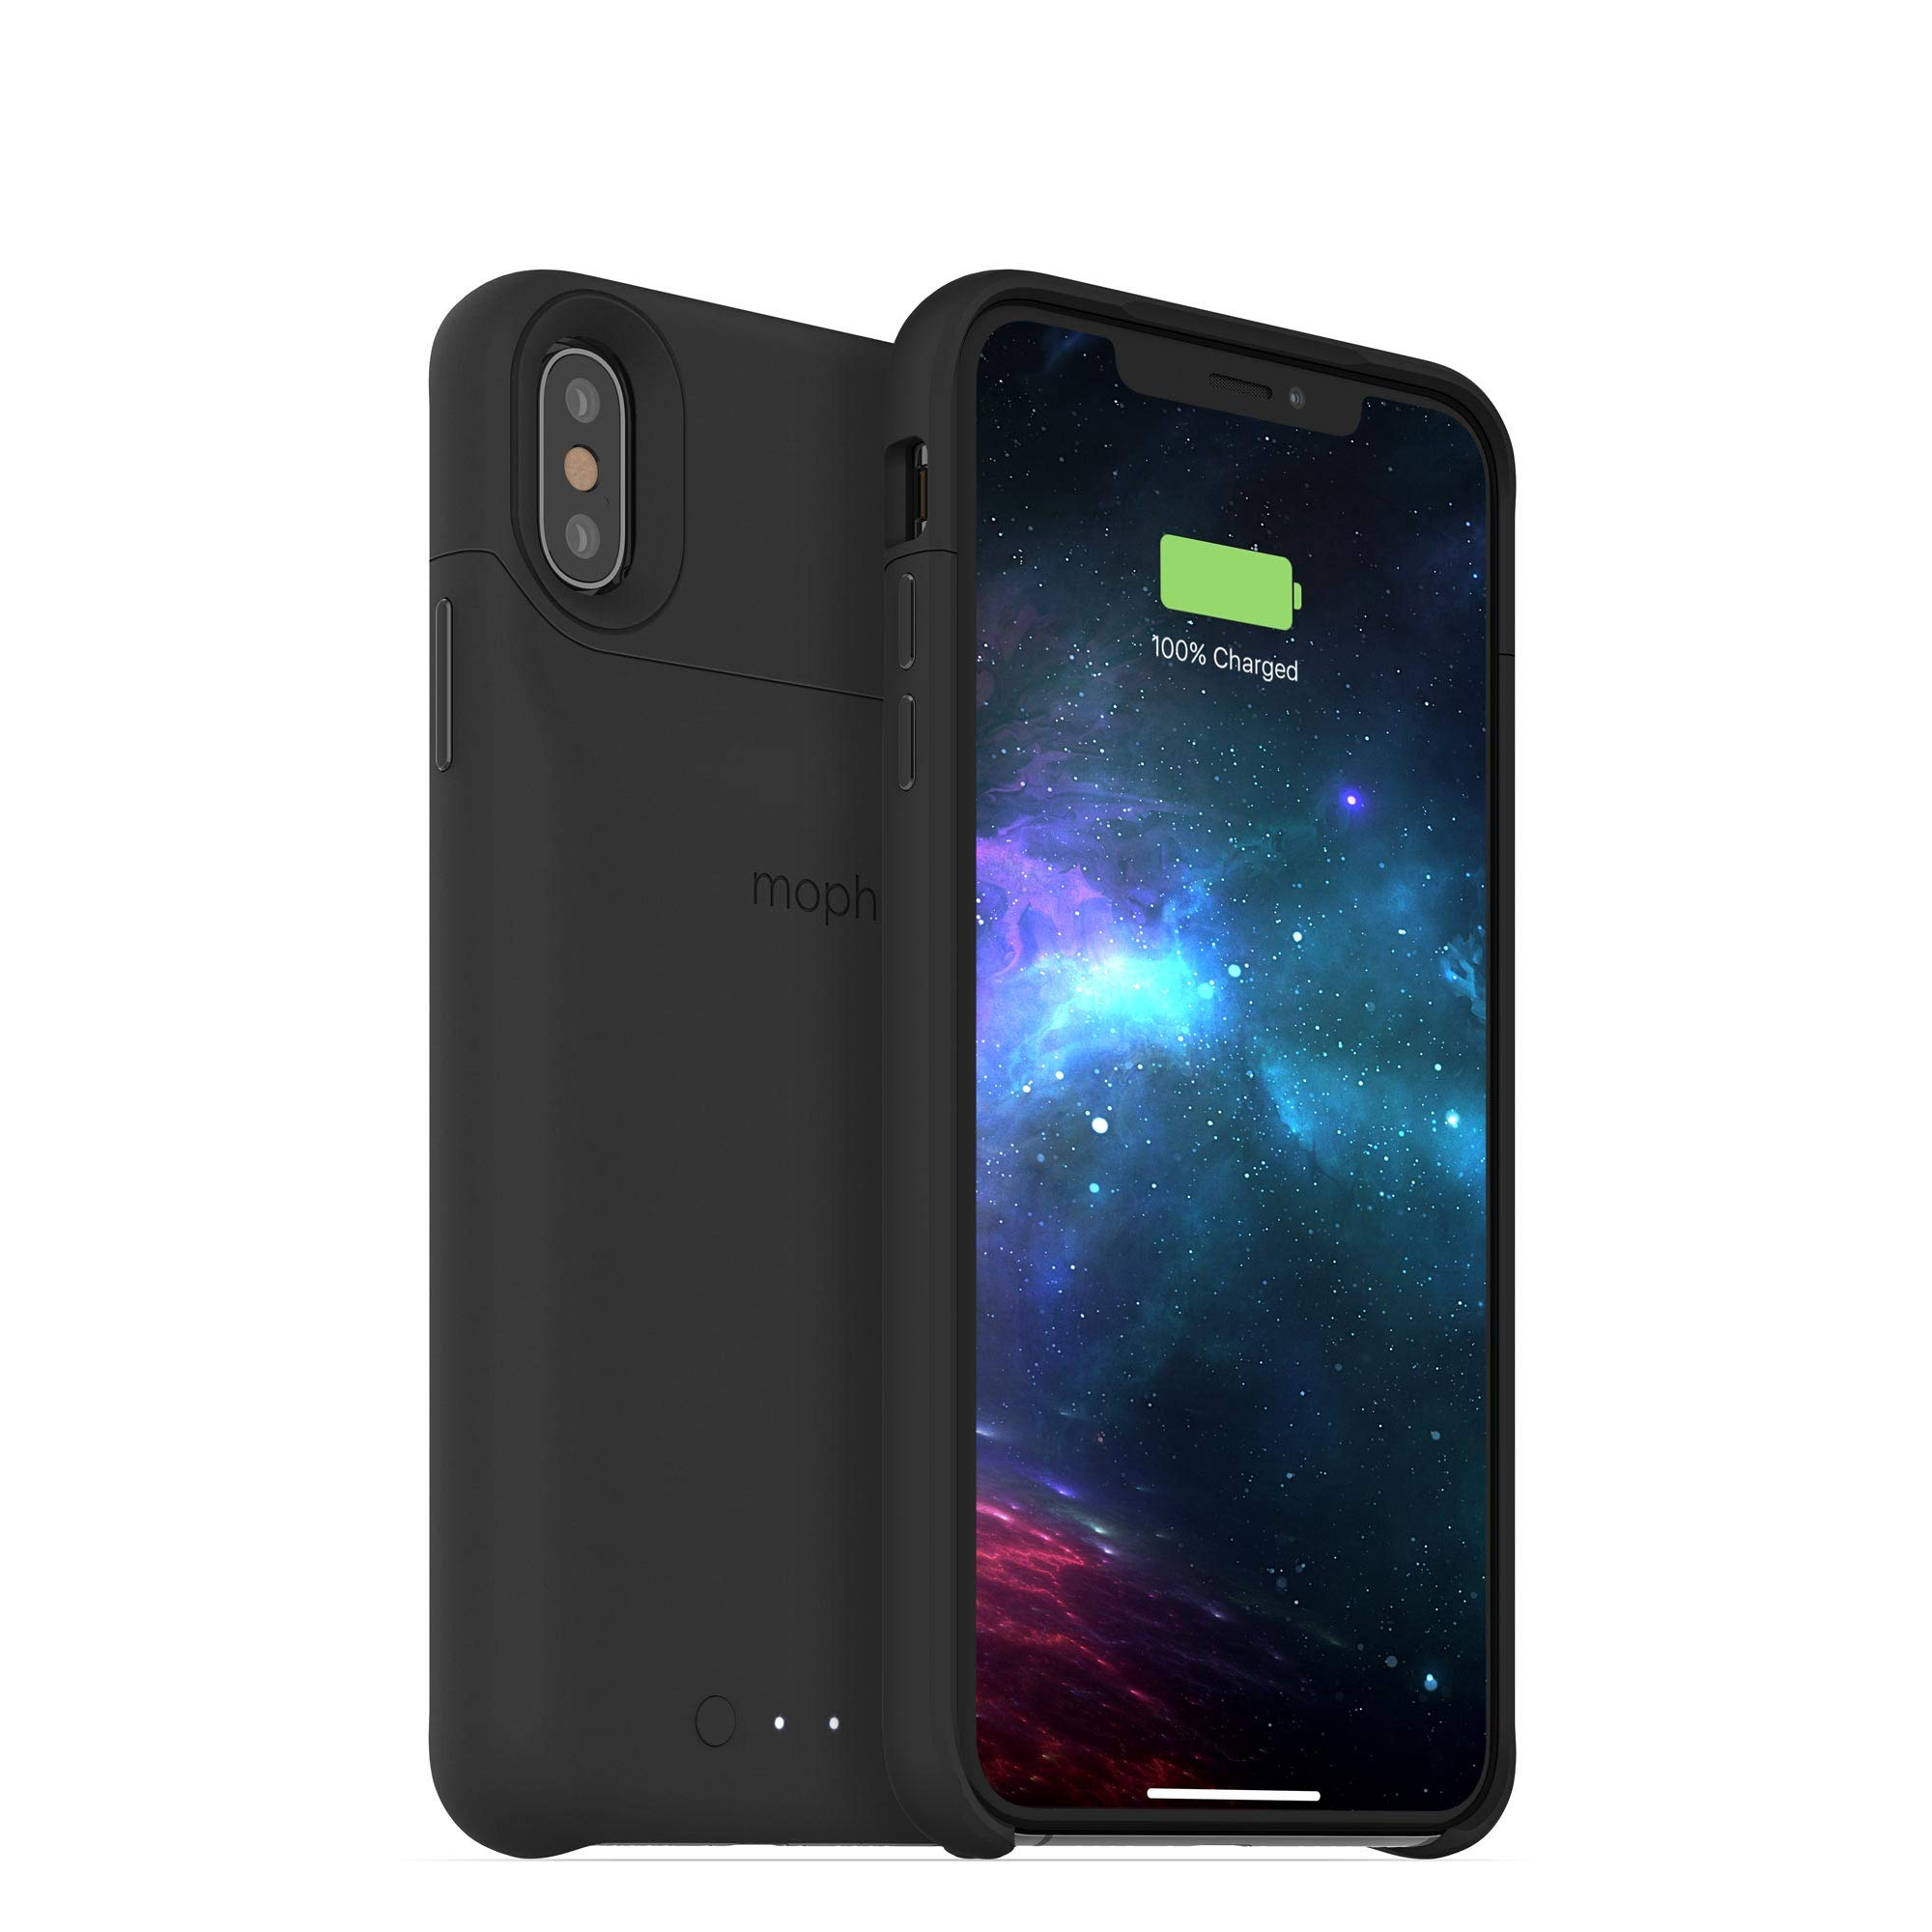 Mophie Juice Pack Access - Ultra-Slim Wireless Battery Case - Made for Apple iPhone Xs Max (2,200mAh) - Black by Mophie